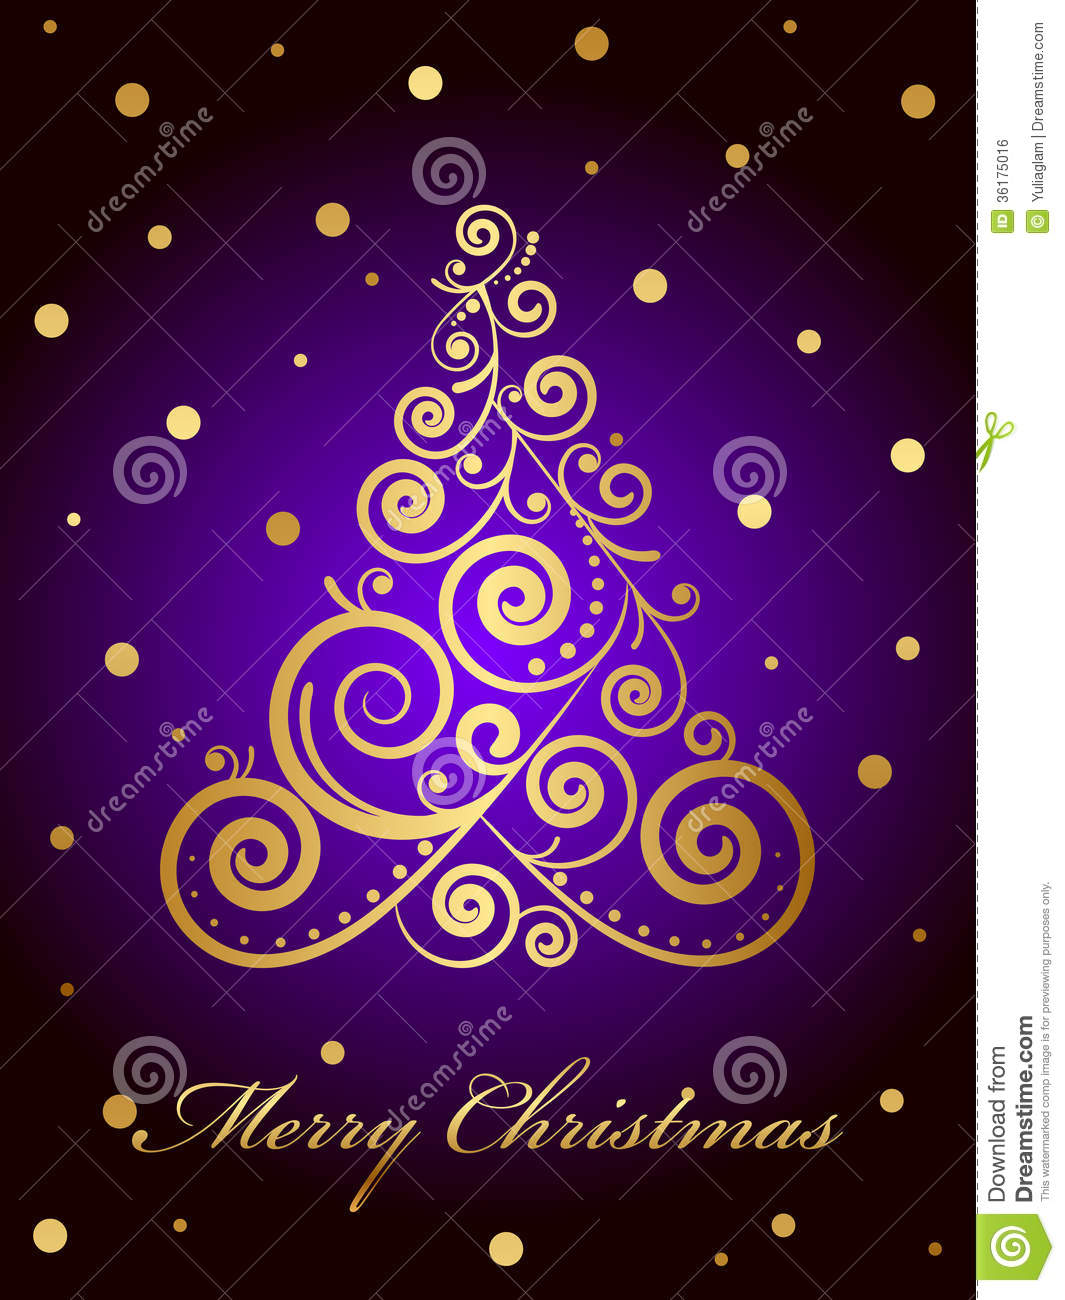 Merry Christmas Card With Gold Ornate Christmas Tr Royalty Free ...